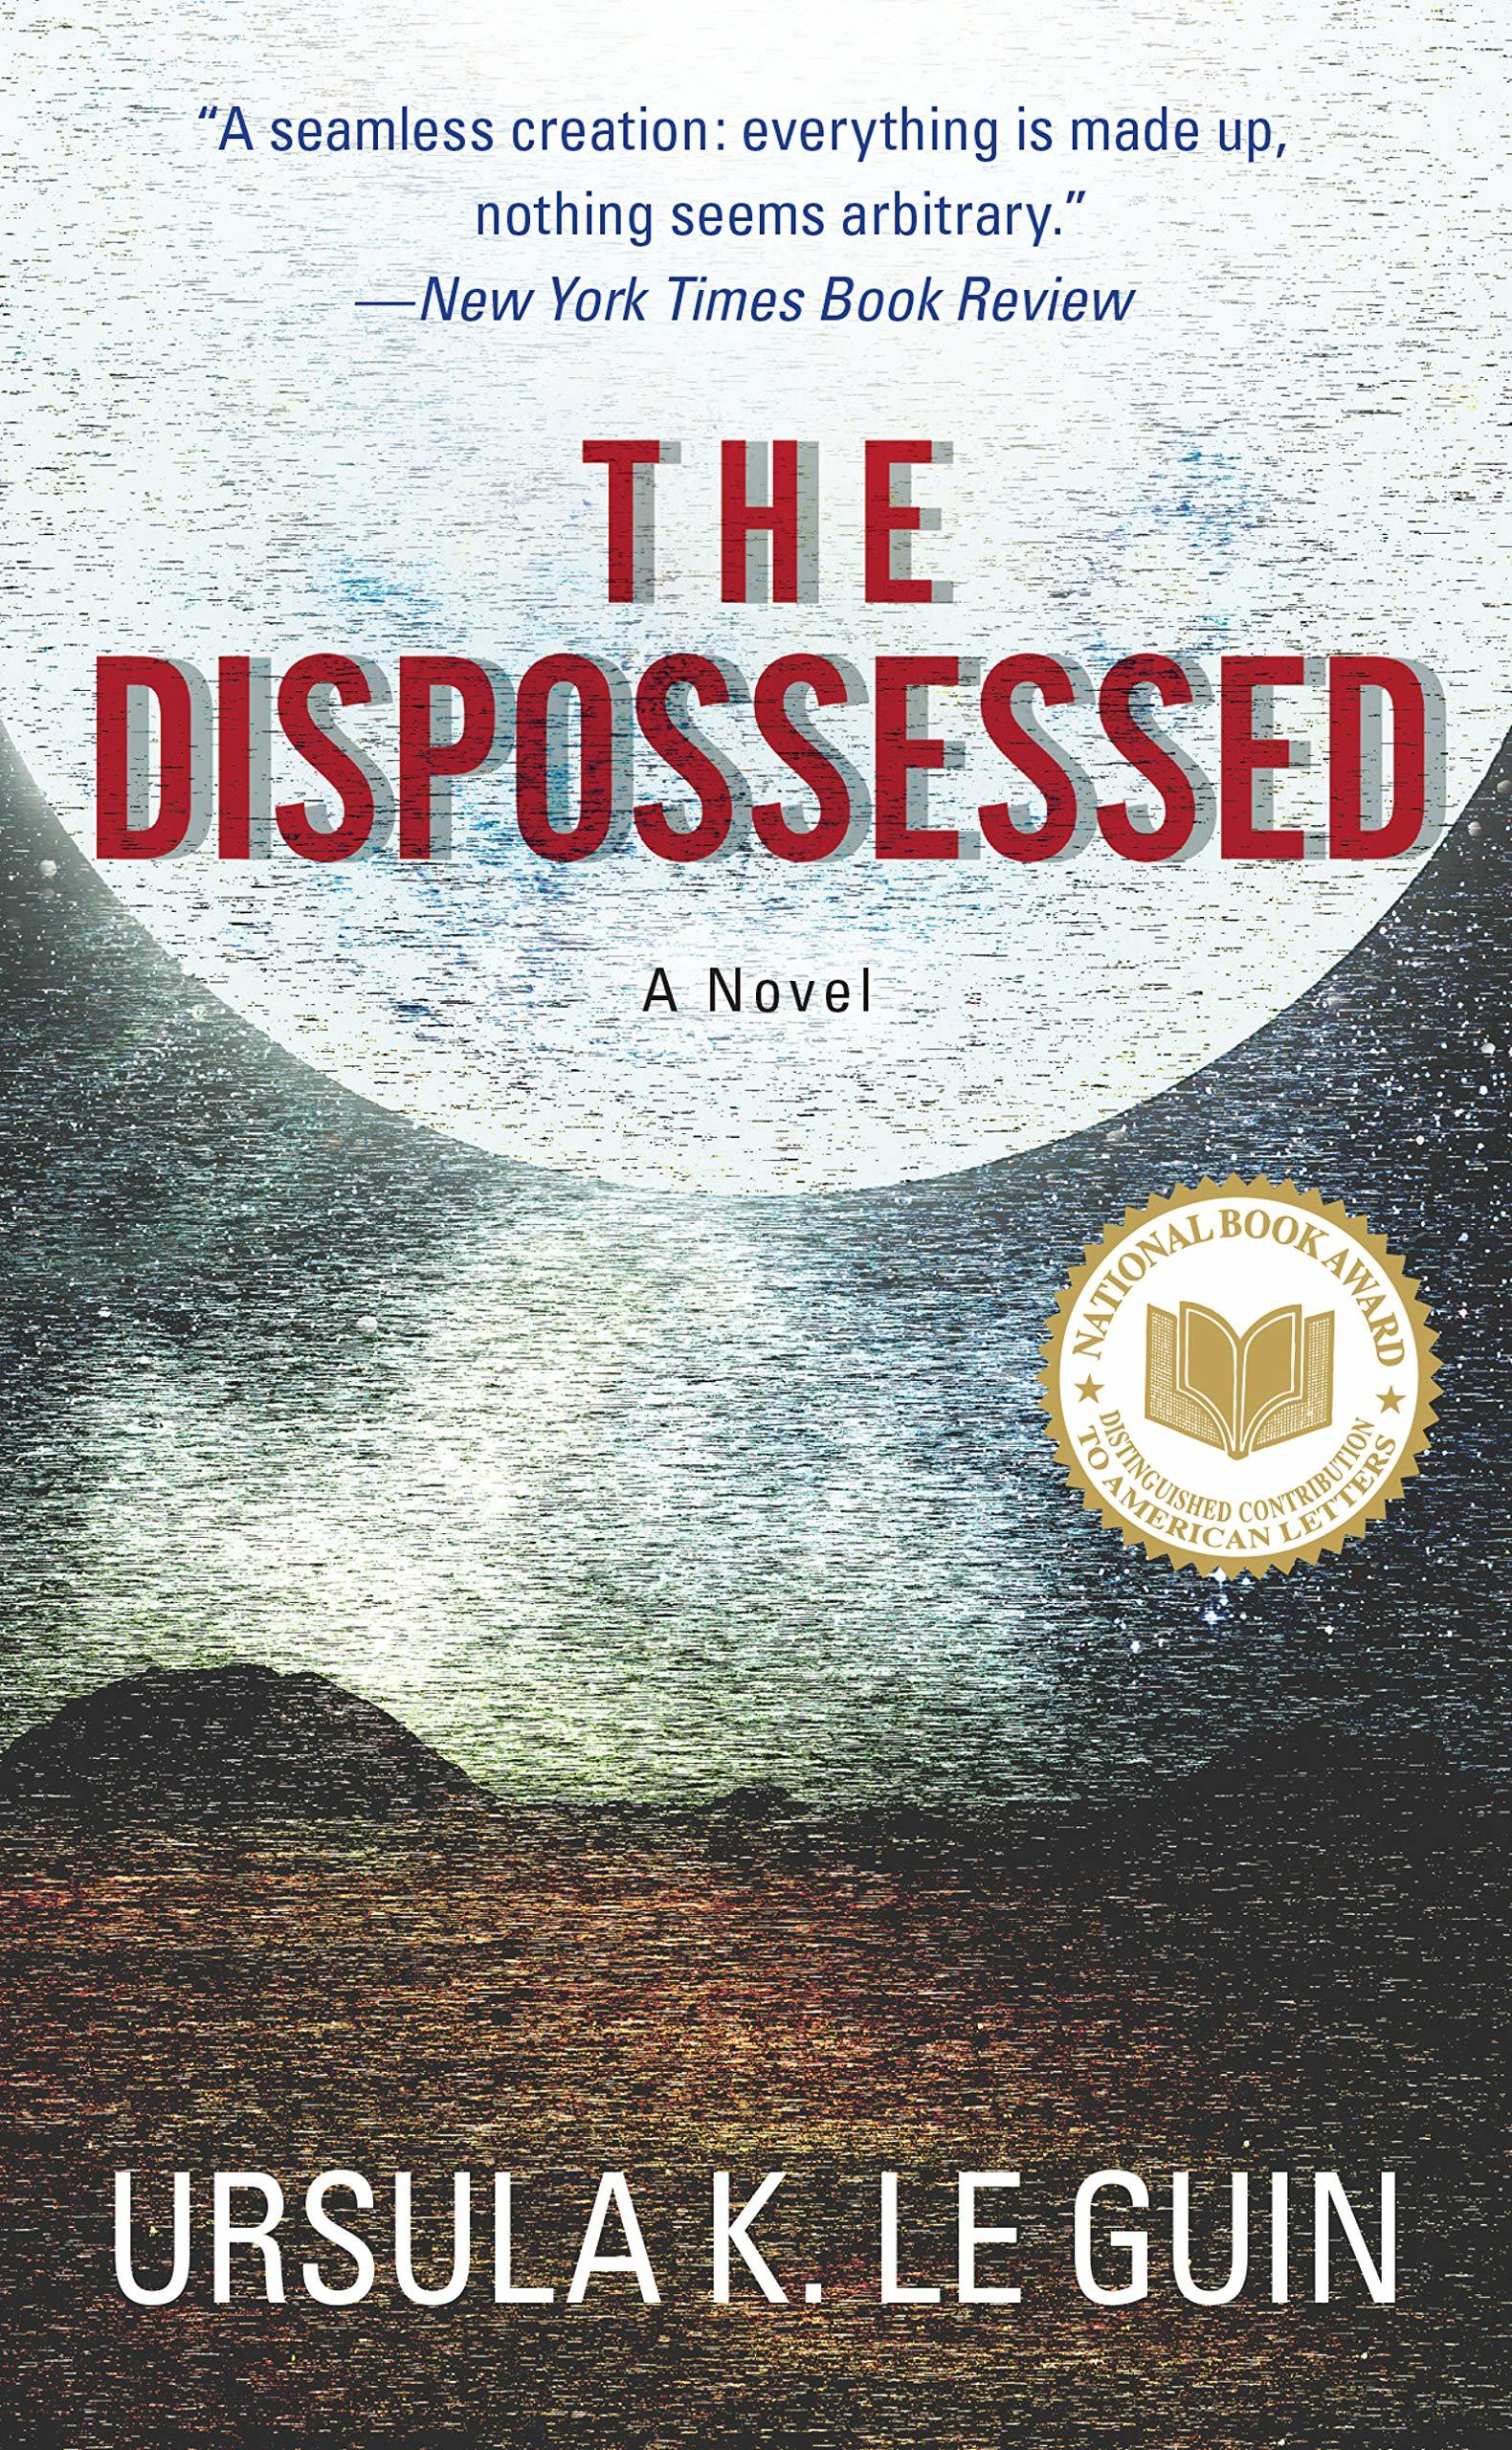 The Dispossessed: An Ambiguous Utopia by Ursula K. Le Guin